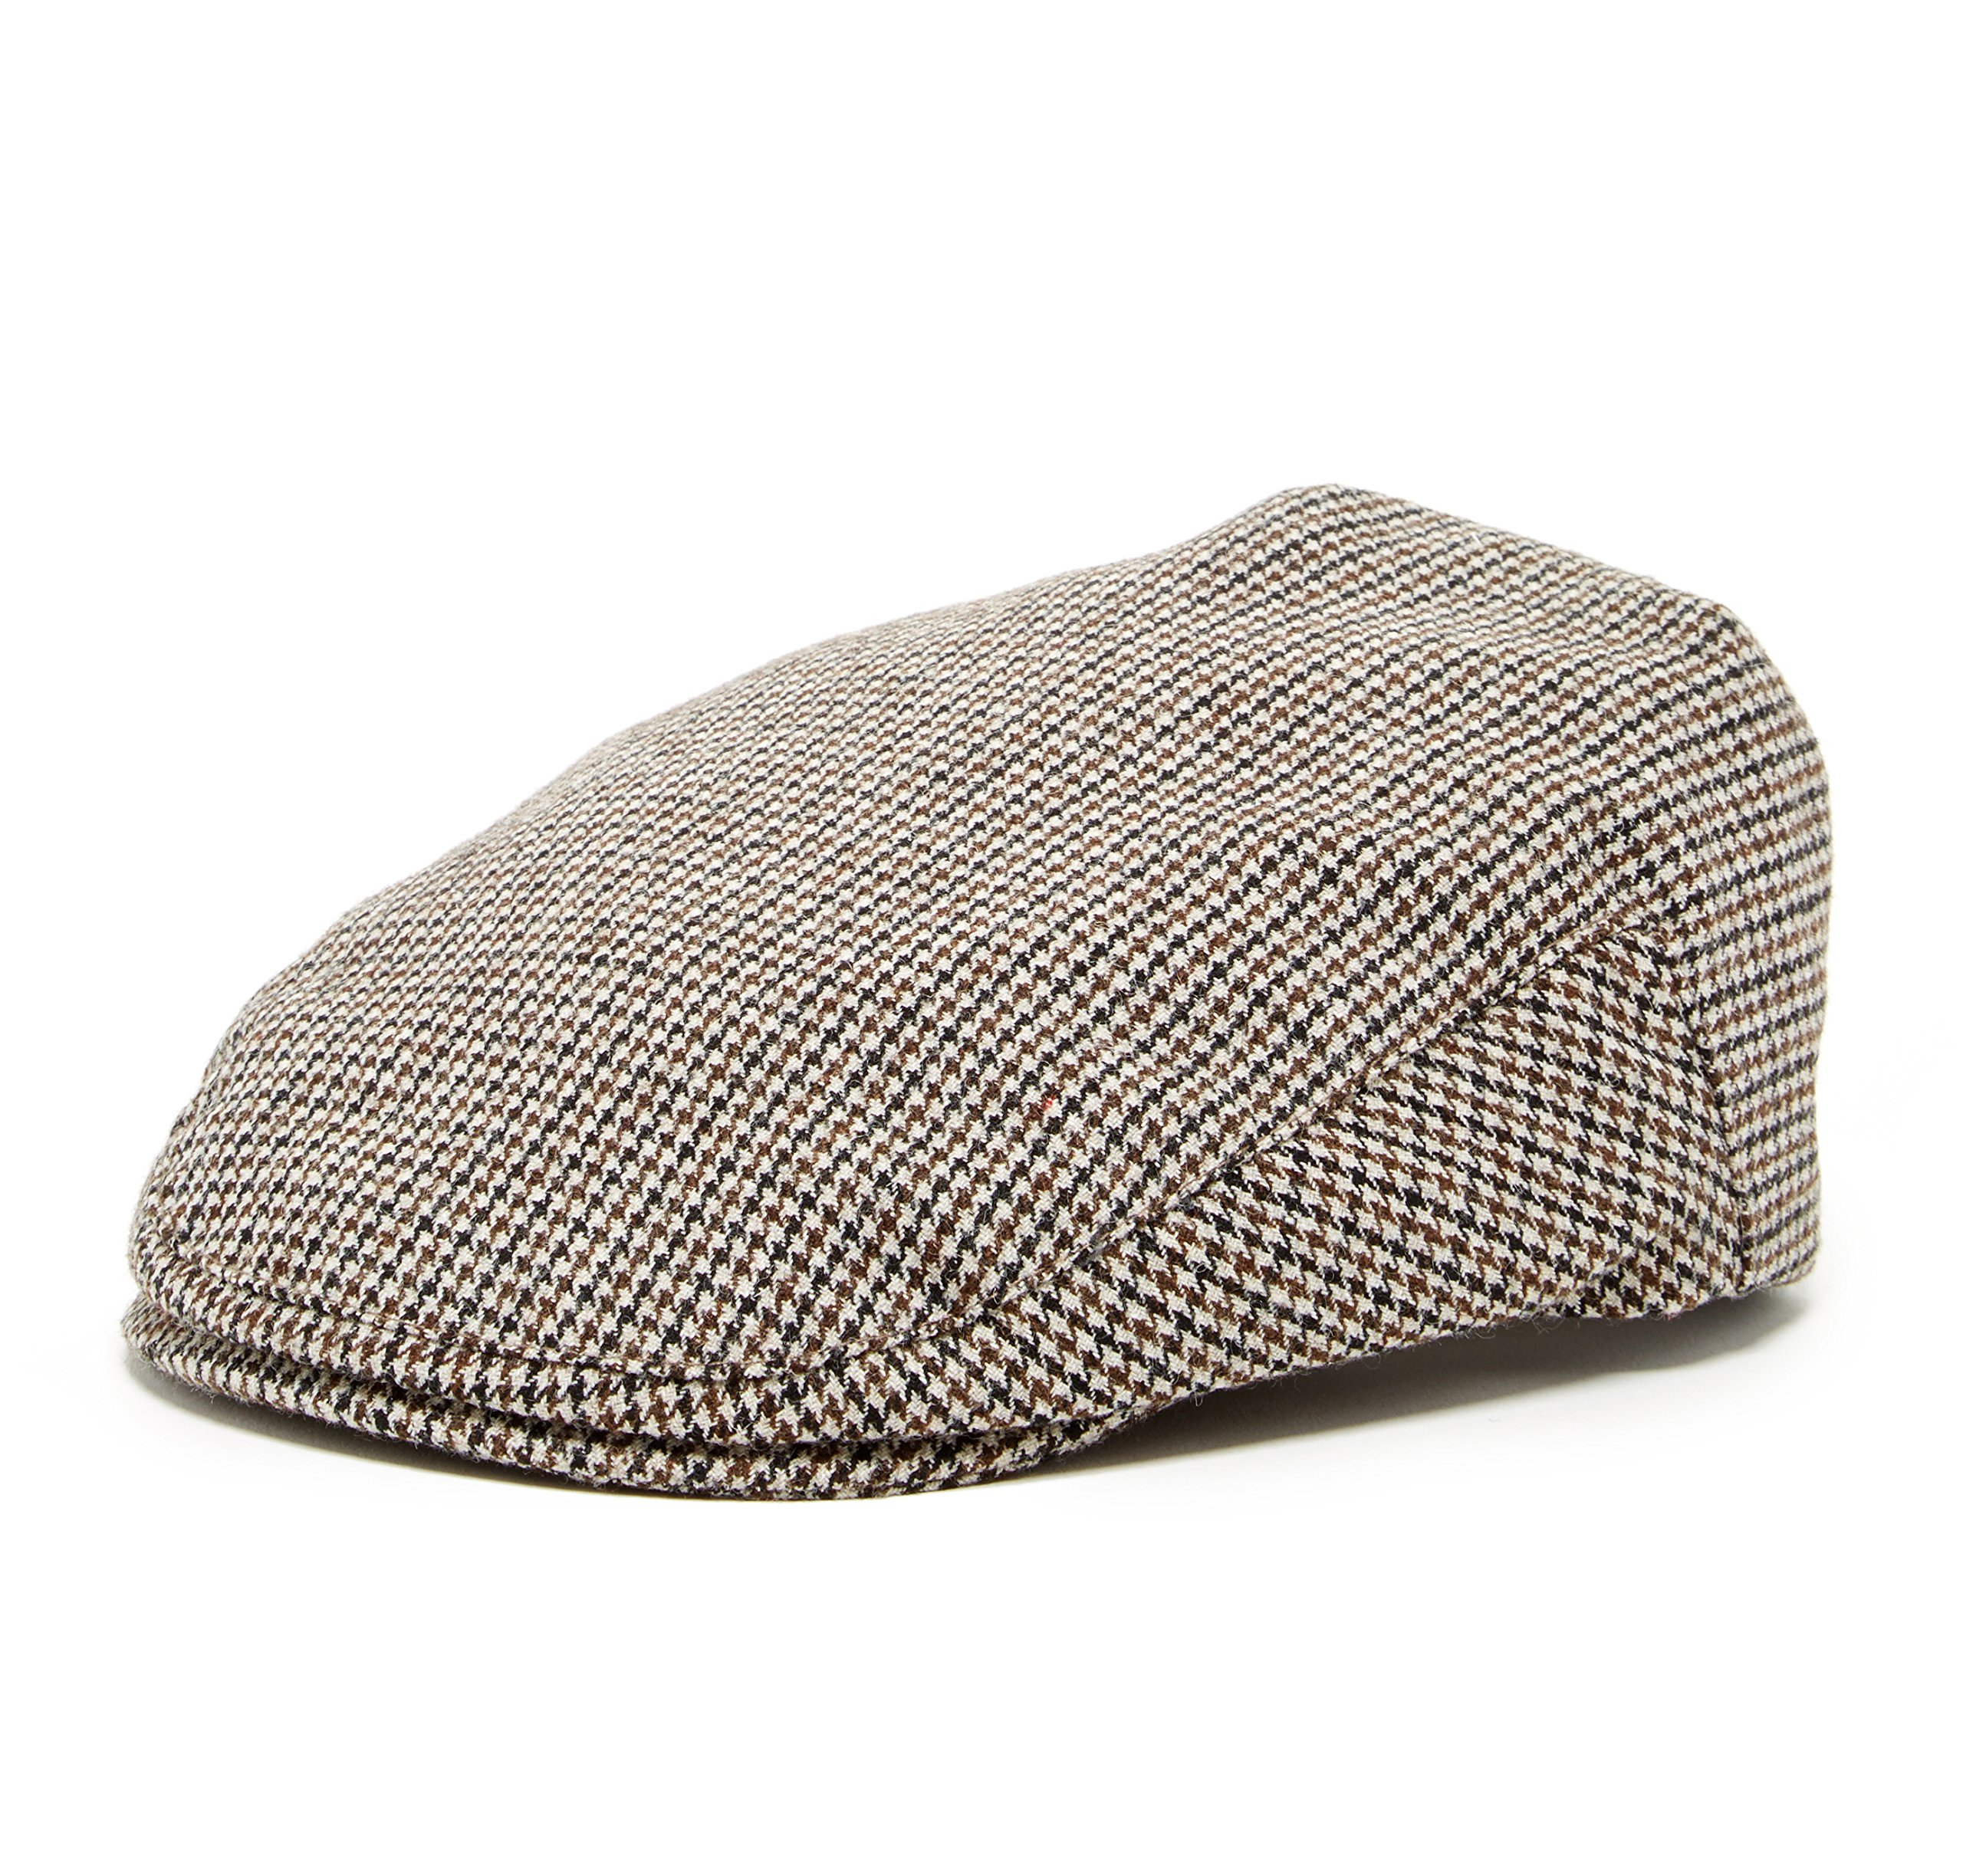 Born to Love Knuckleheads Driver Flat Caps (XXS 46 cm (6-12 Months), Houndstooth)